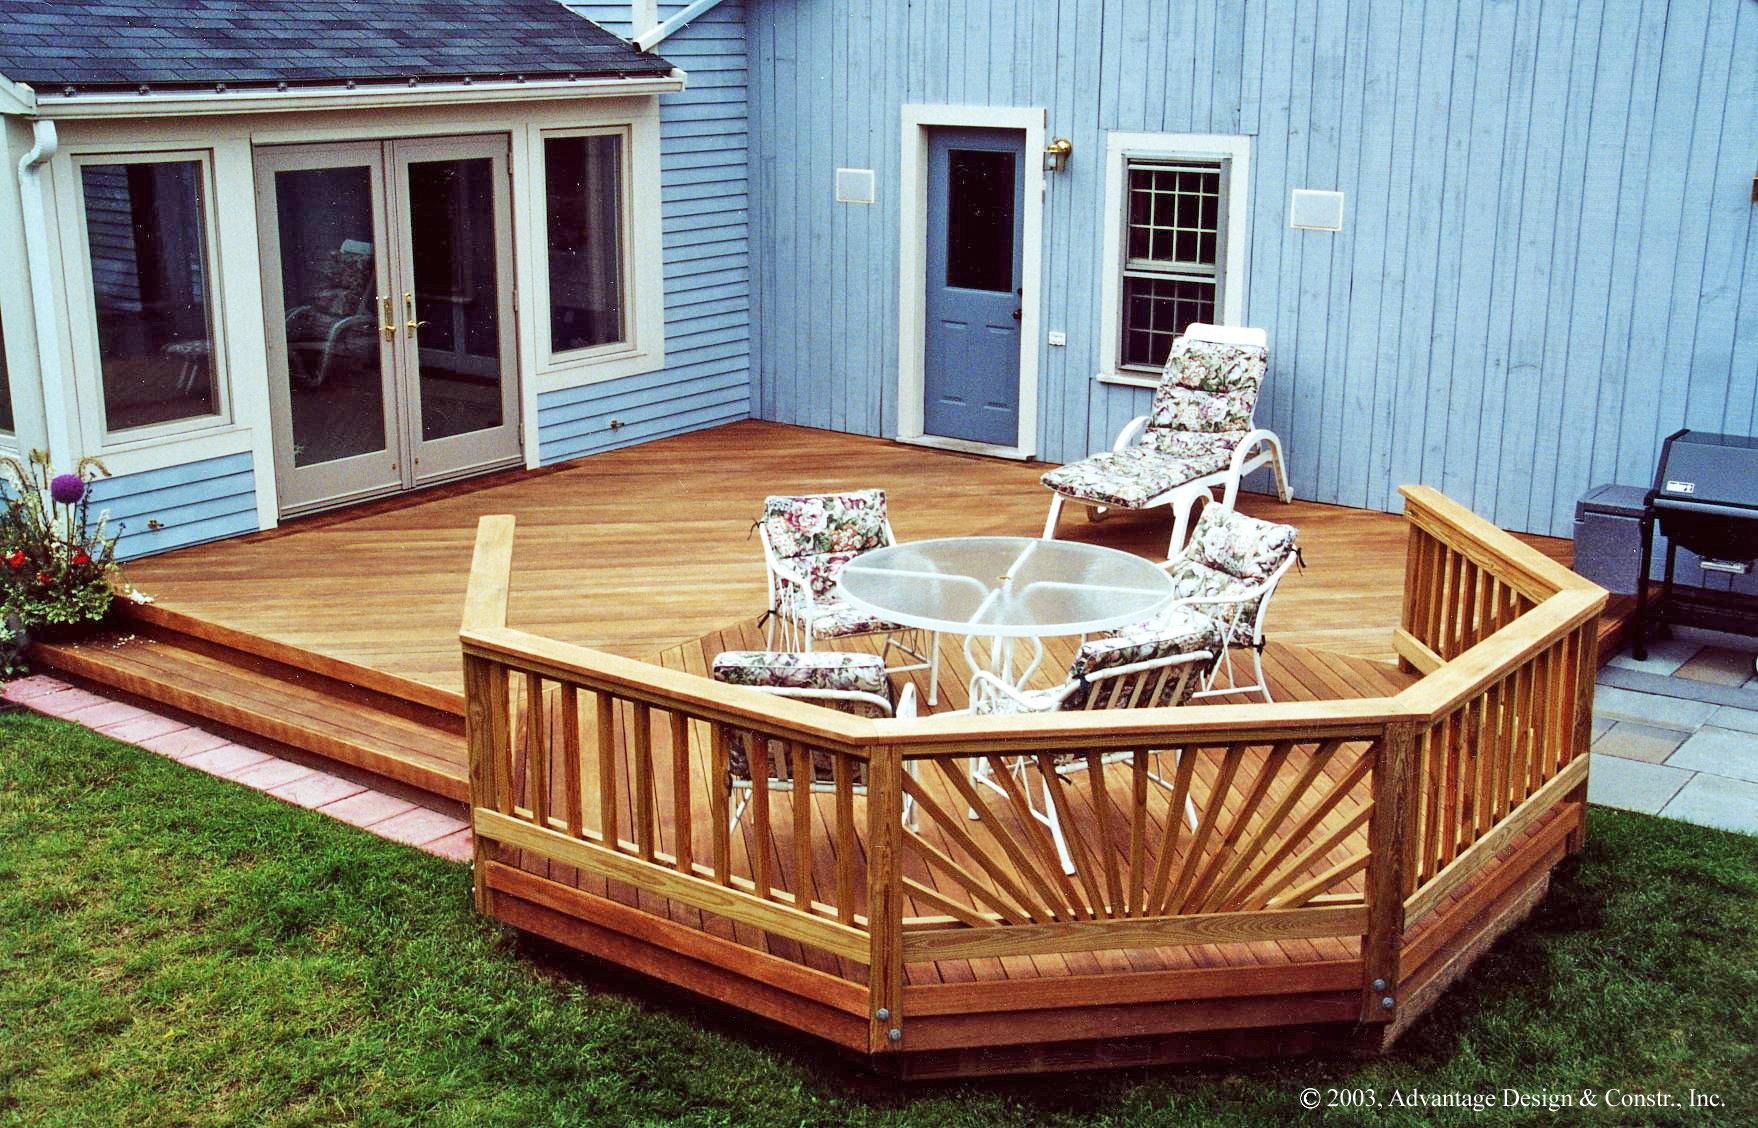 Choosing a deck or a patio suburban boston decks and for Backyard deck pictures